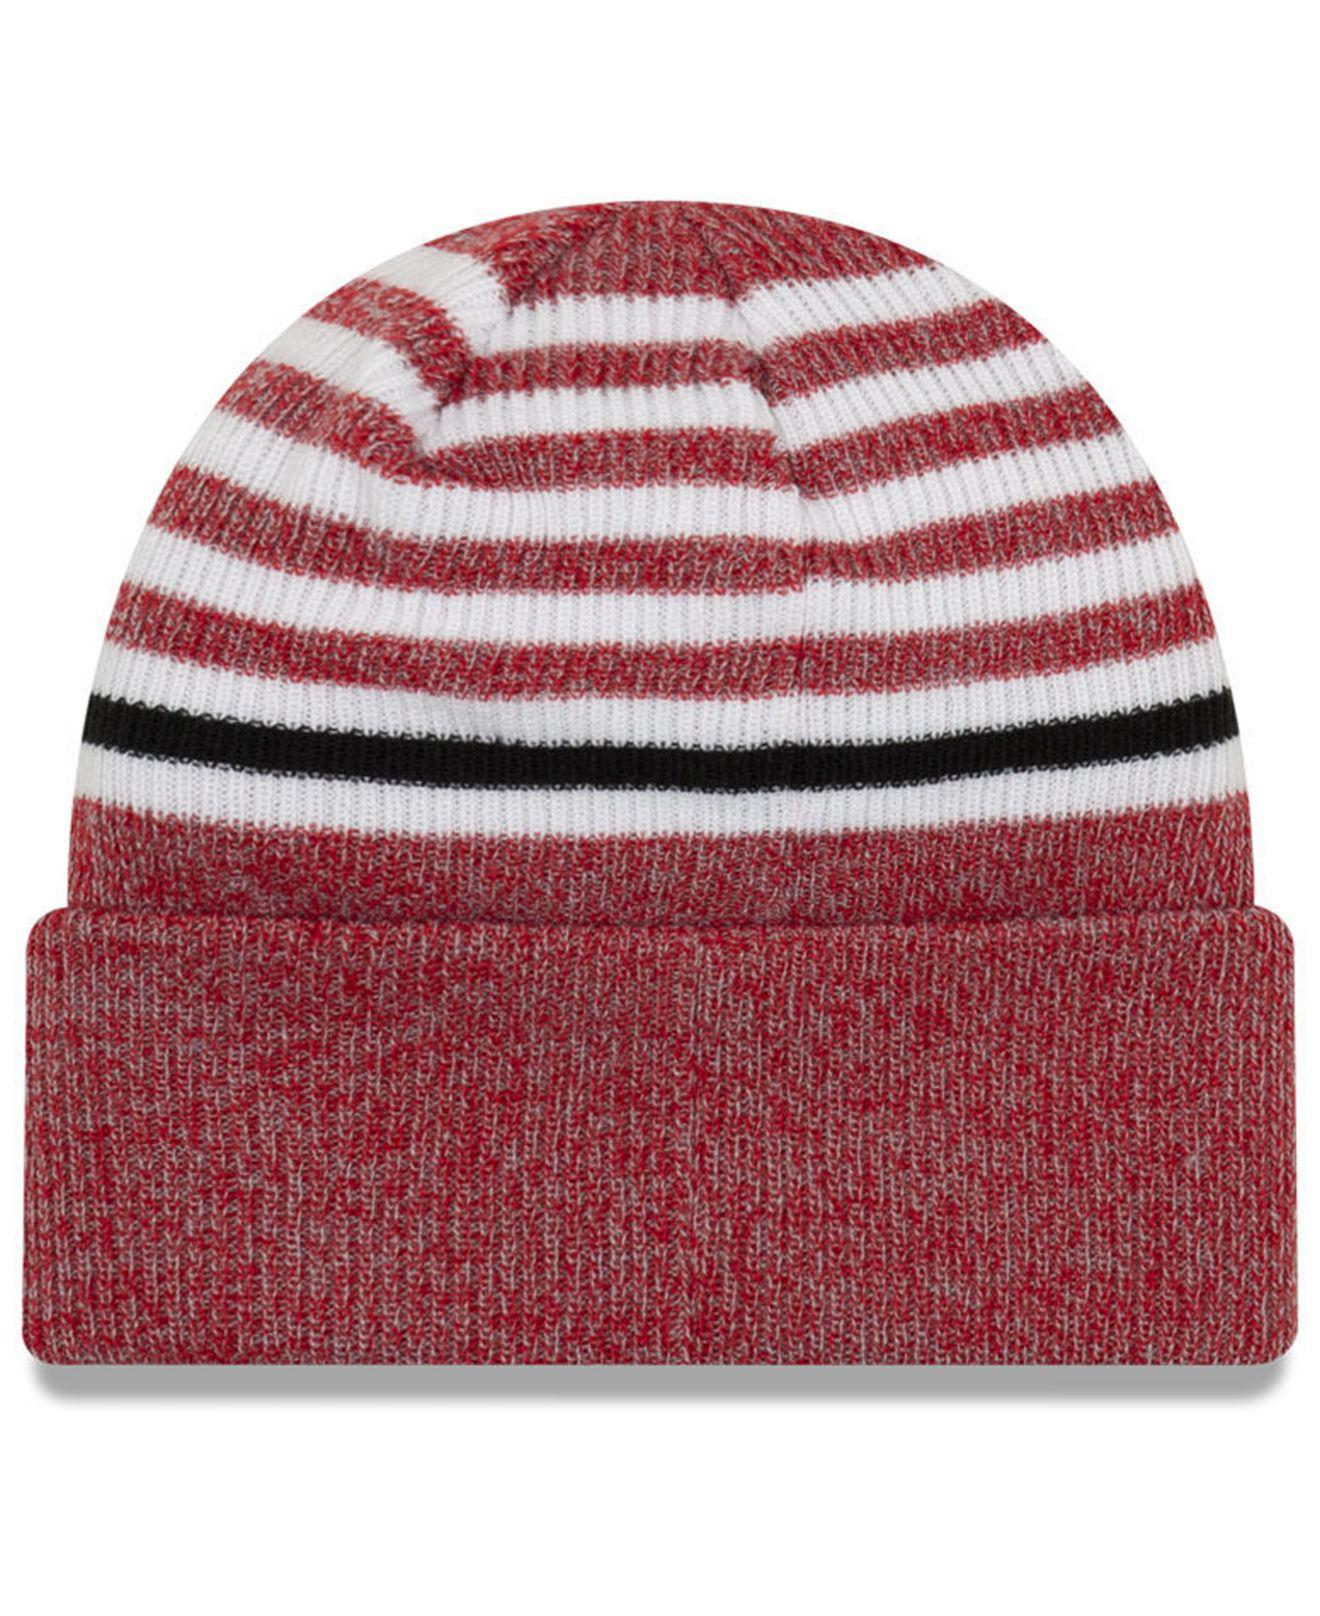 pretty nice 729cb 83a53 ... 9fifty snapback cap outlet store online hzlppj8797 04572 6c8d6   discount lyst ktz houston rockets striped cuff knit hat in red for men  a56c0 55ca7